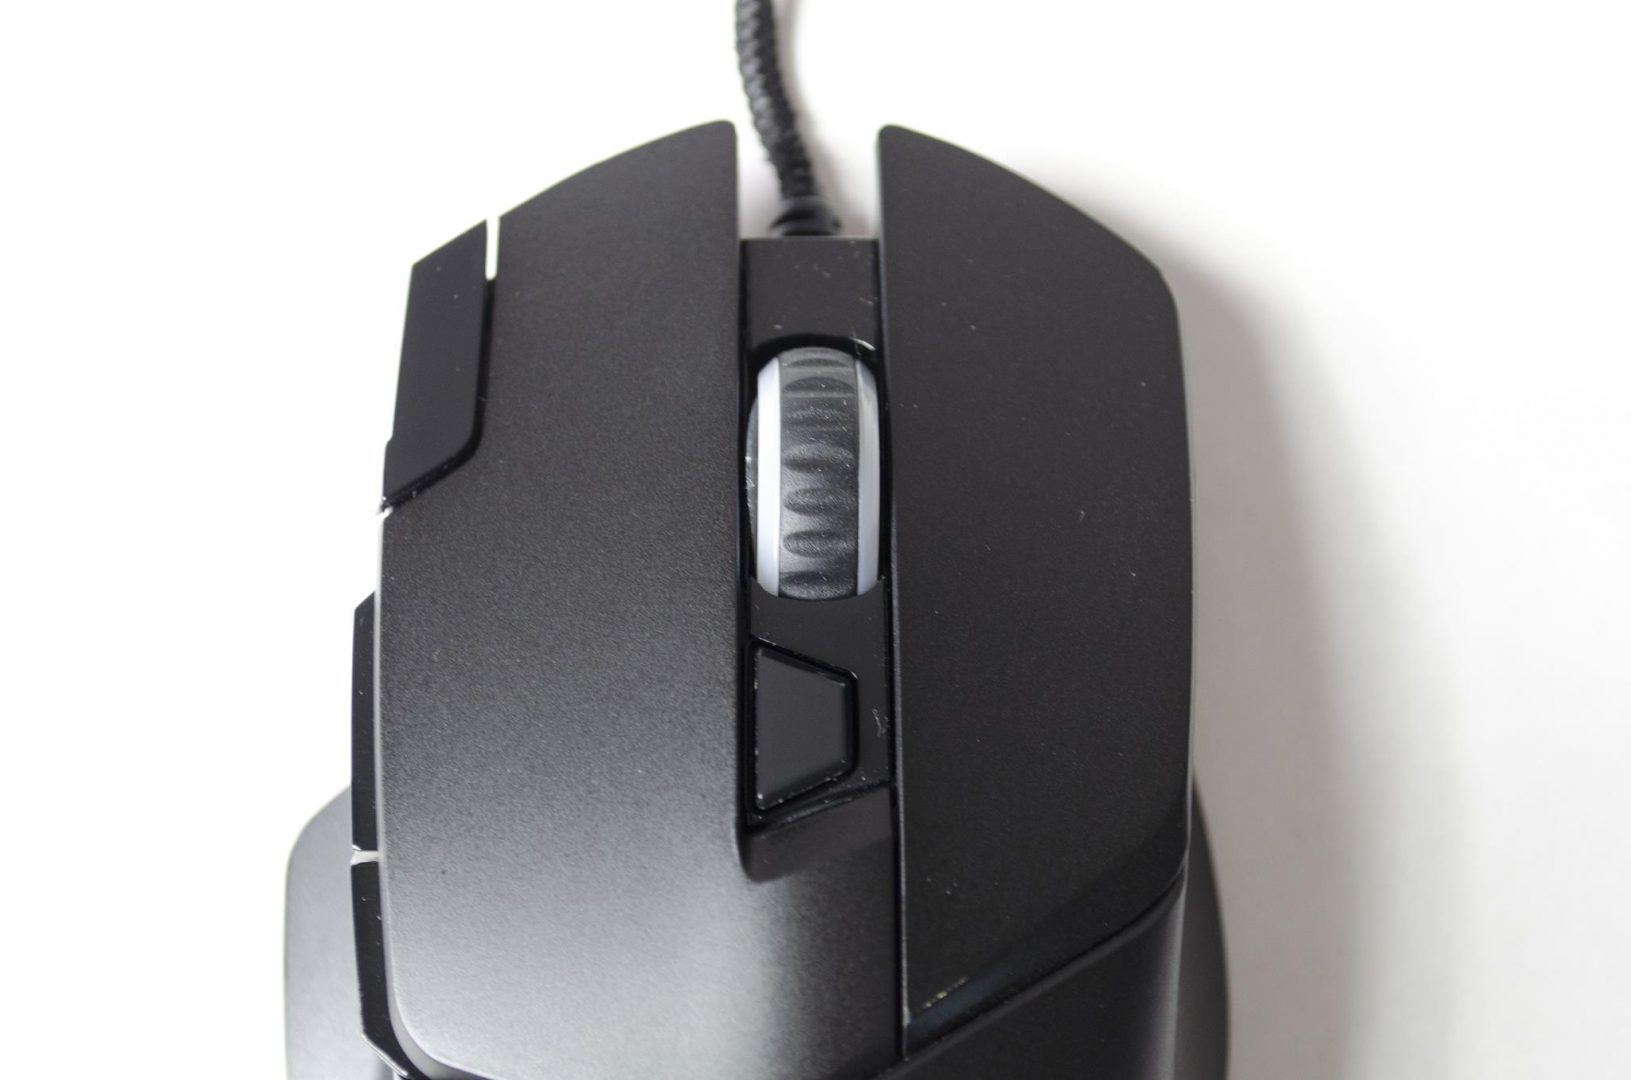 tesoro ascalon spectrum rgb gaming mouse_12